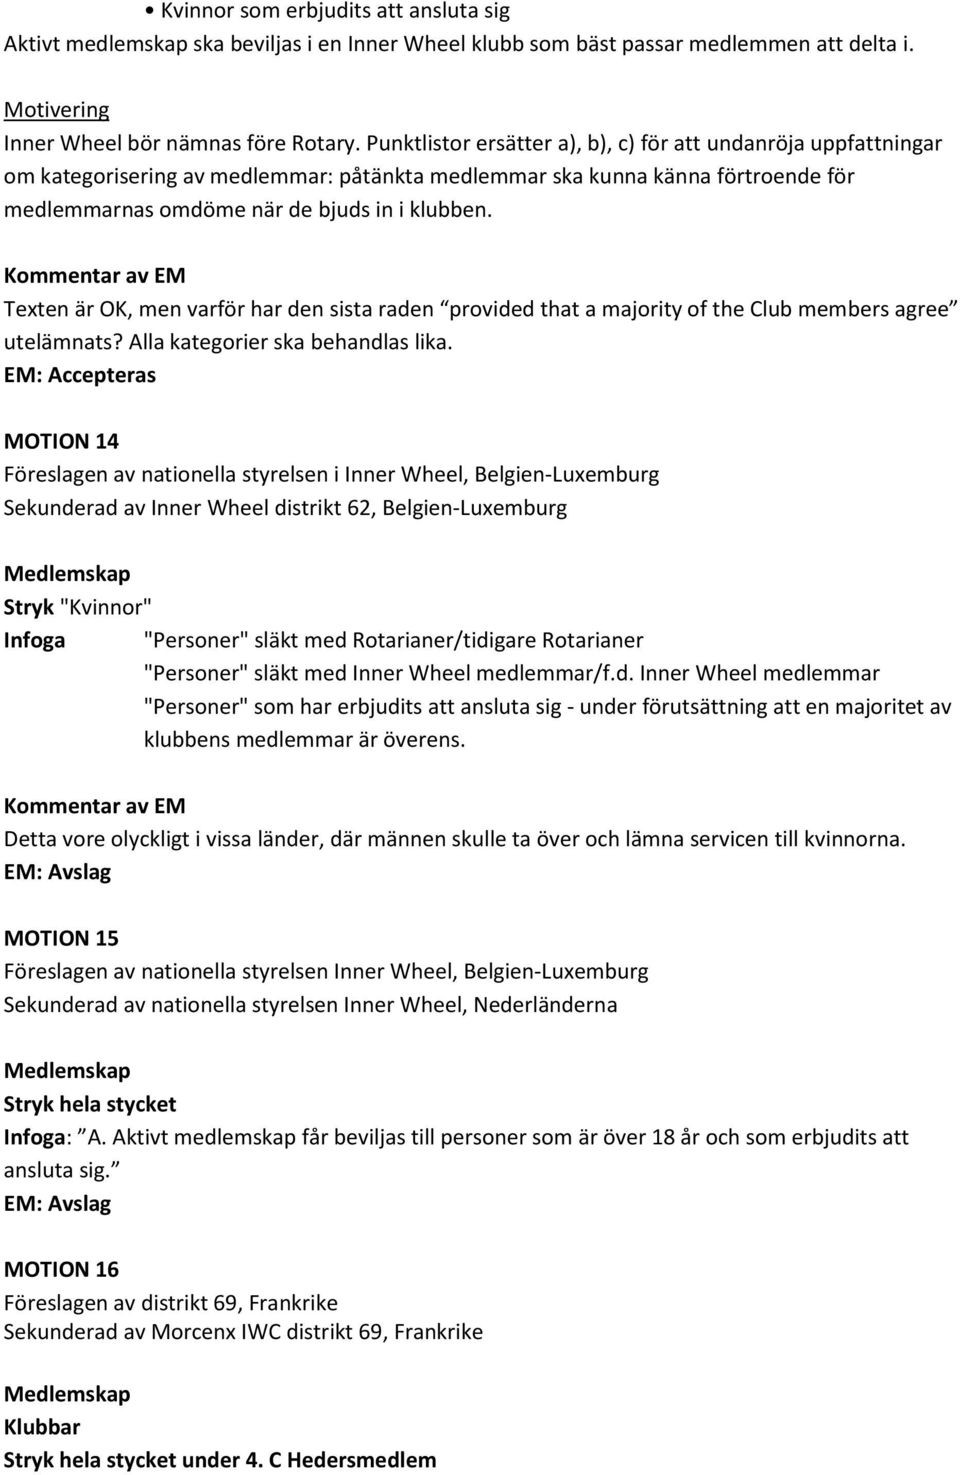 Kommentar av EM Texten är OK, men varför har den sista raden provided that a majority of the Club members agree utelämnats? Alla kategorier ska behandlas lika.